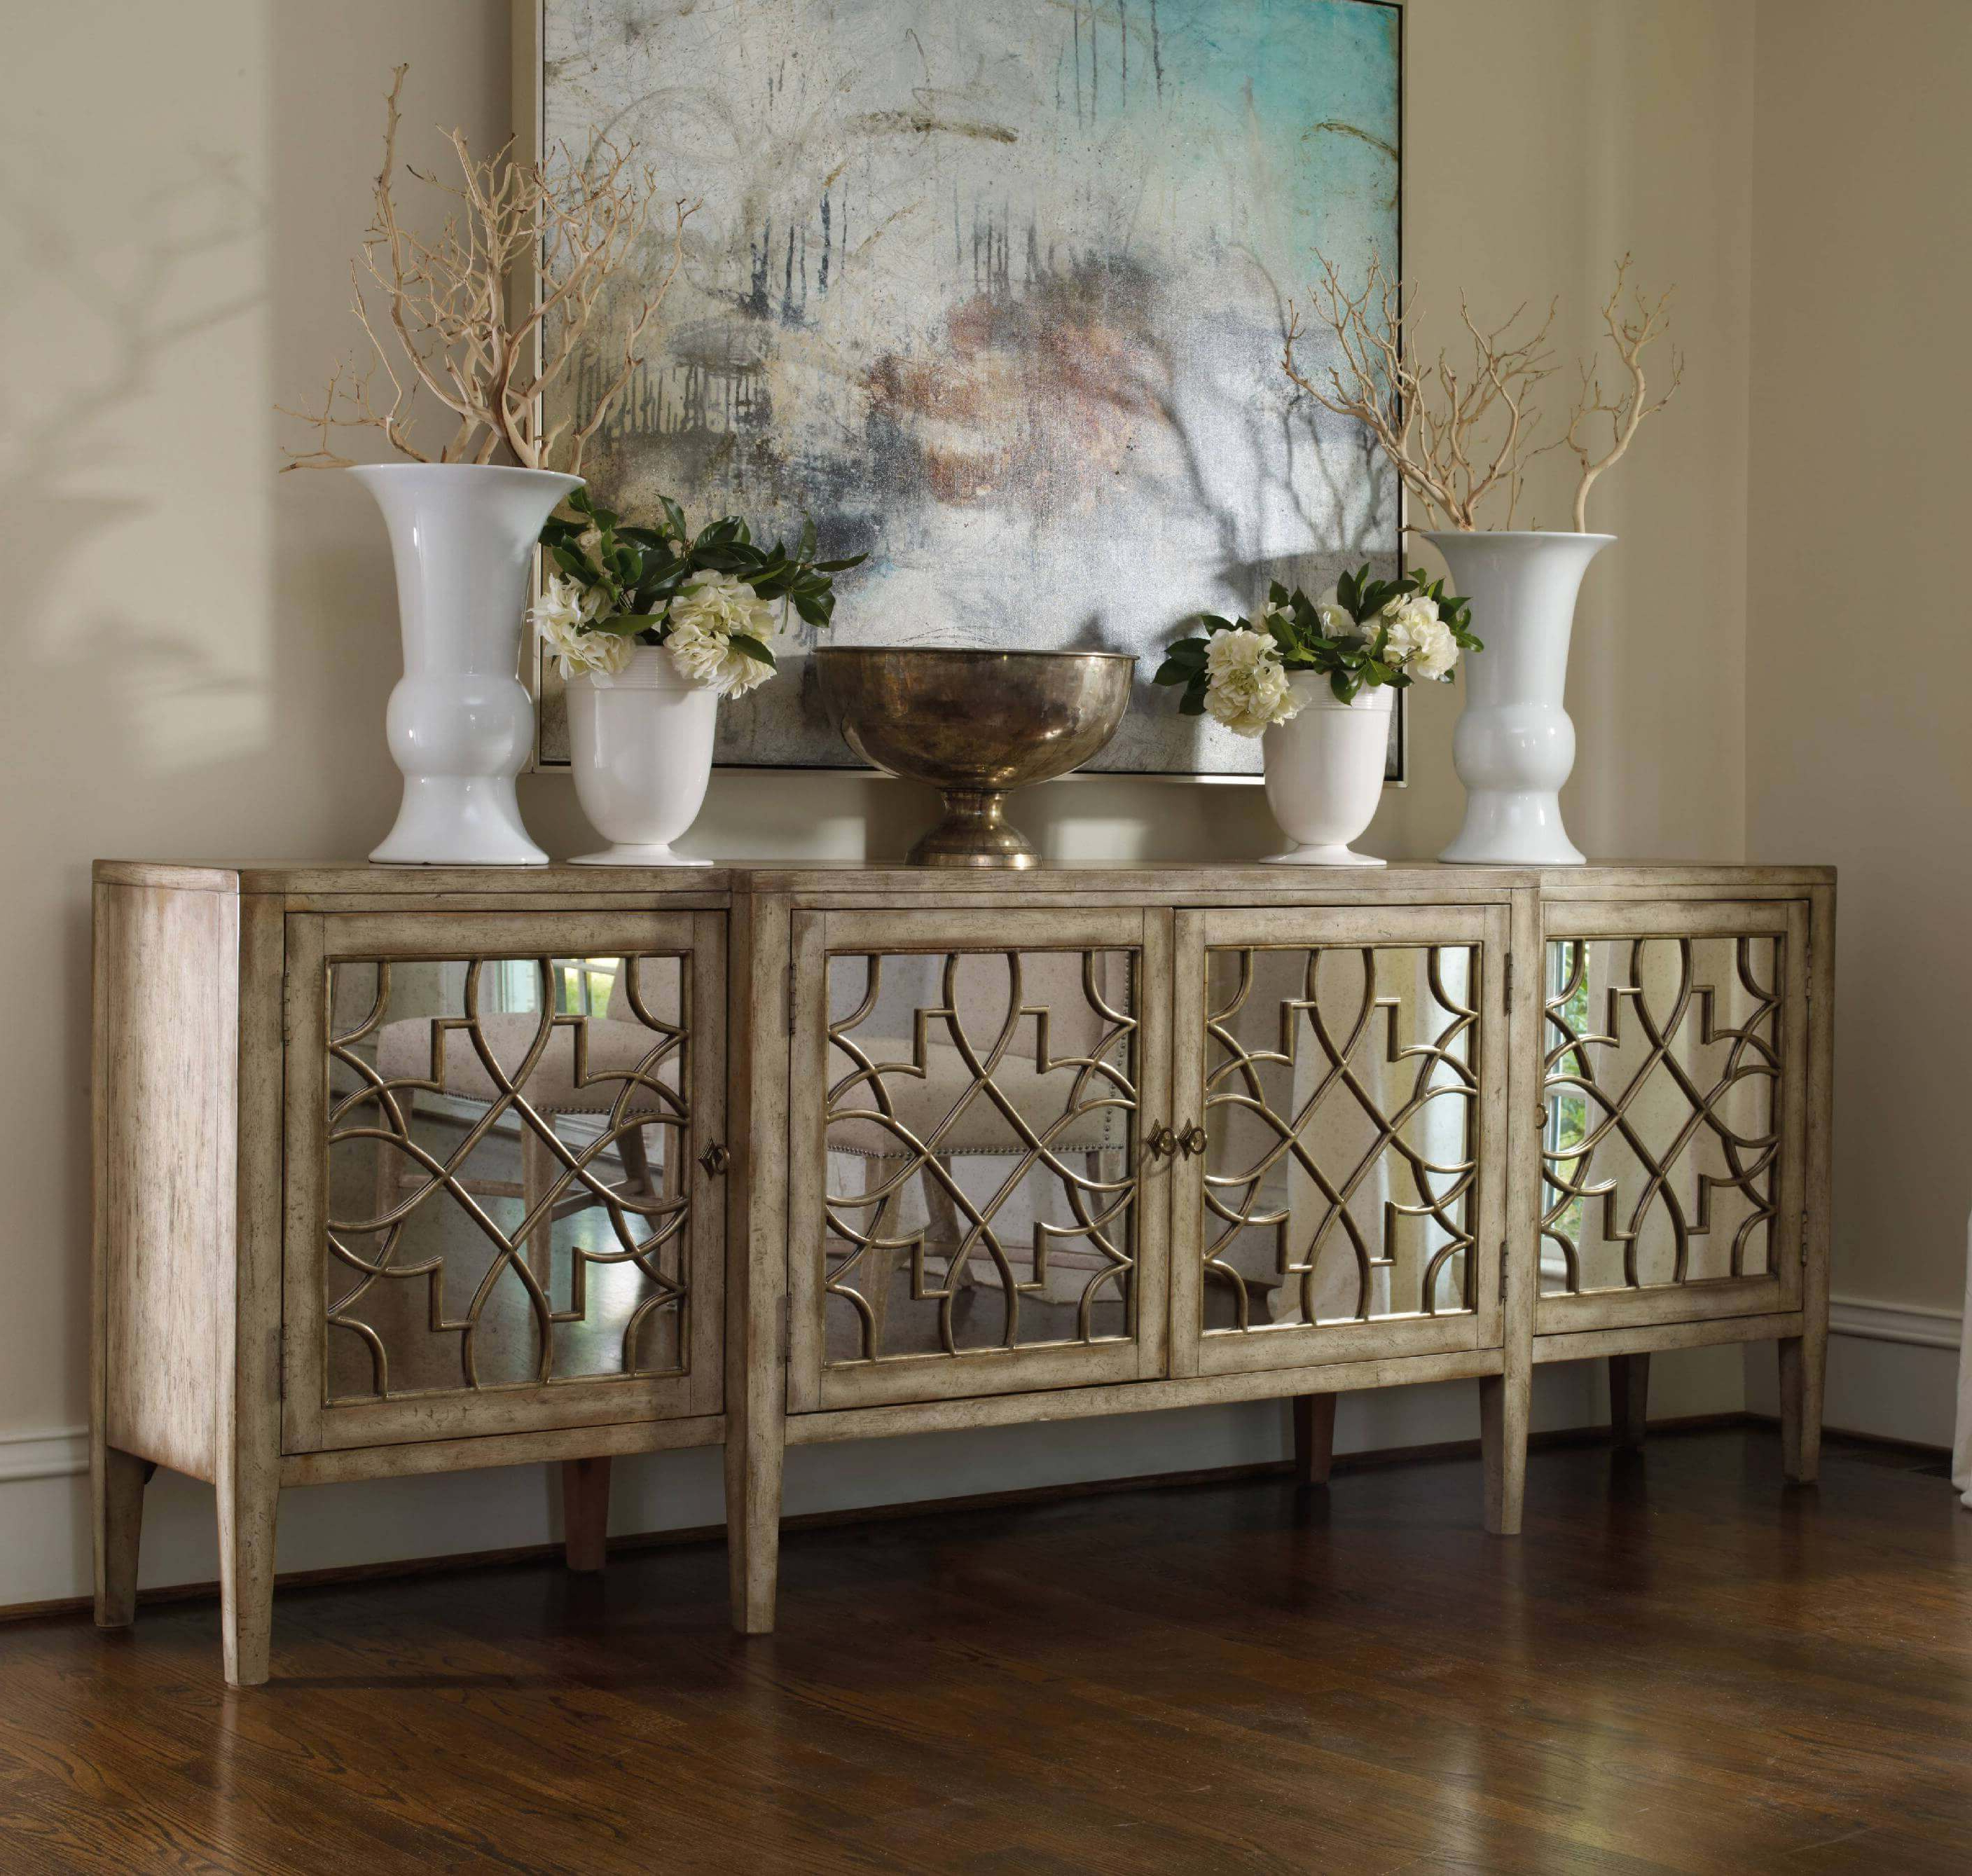 30 Best Rustic Glam Decoration Ideas And Designs For 2019 Throughout Natural Wood Mirrored Media Console Tables (View 2 of 20)